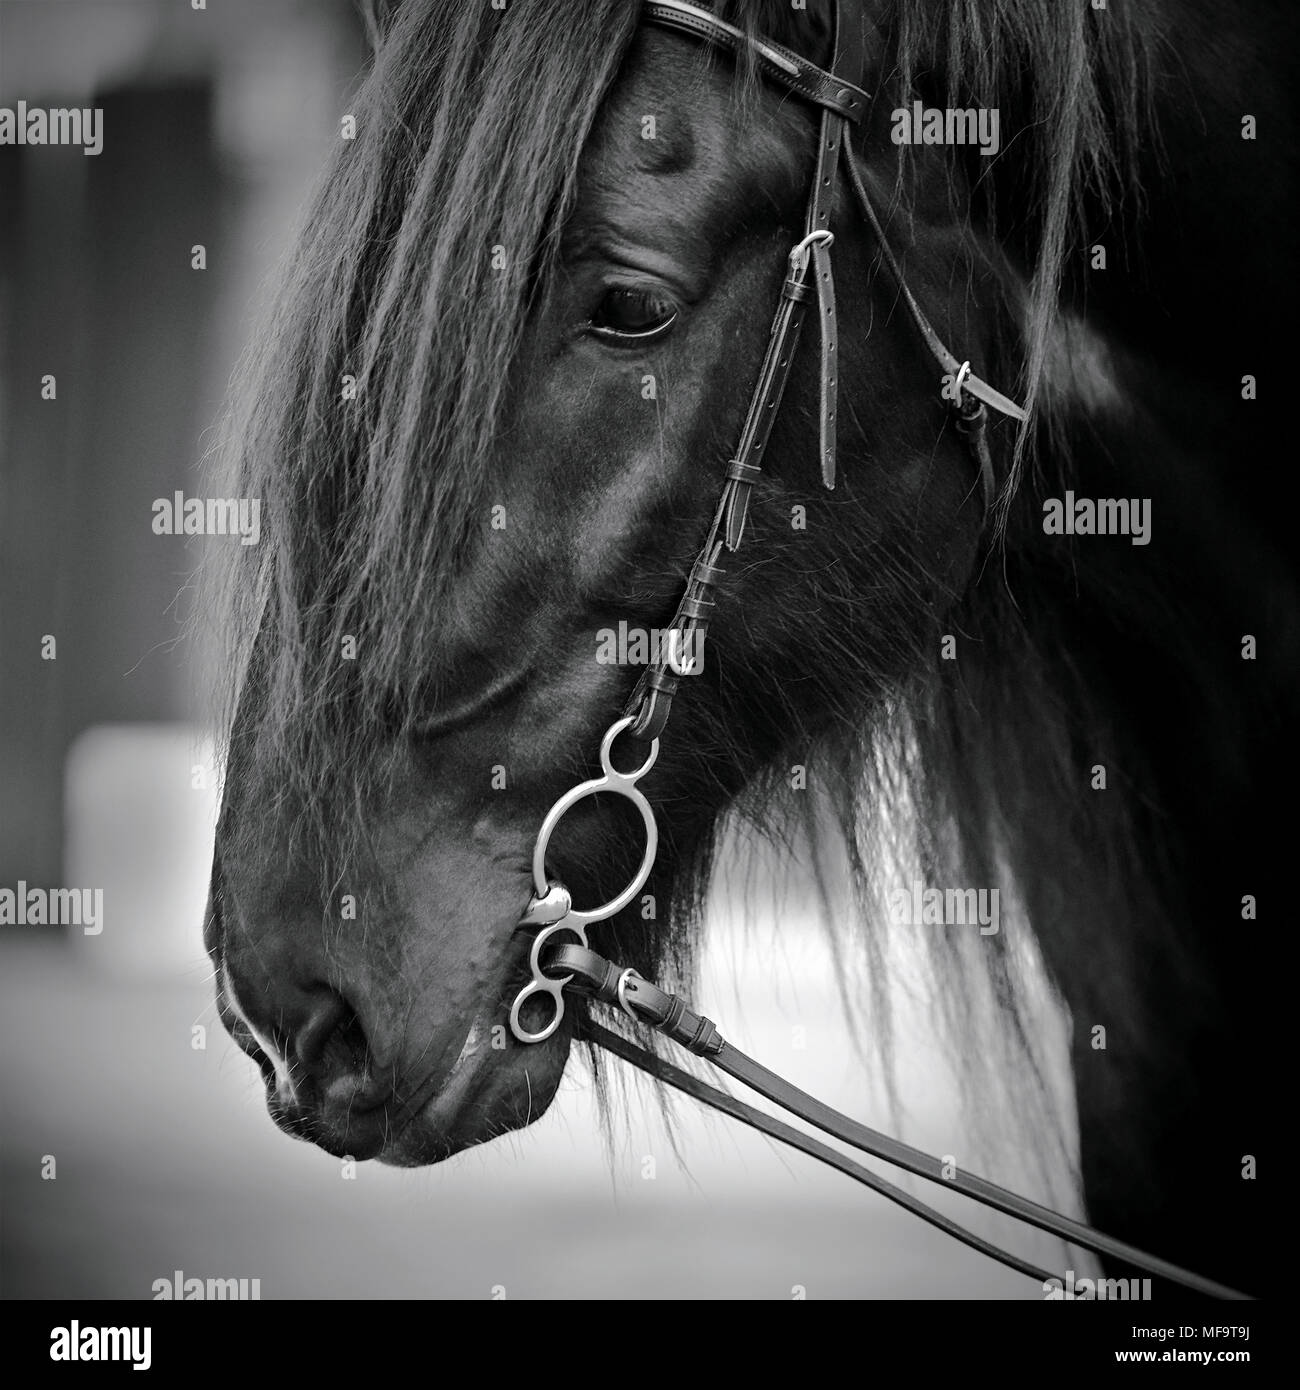 Muzzle of a horse. Stallion. Portrait of a horse. Thoroughbred horse. Beautiful horse. - Stock Image